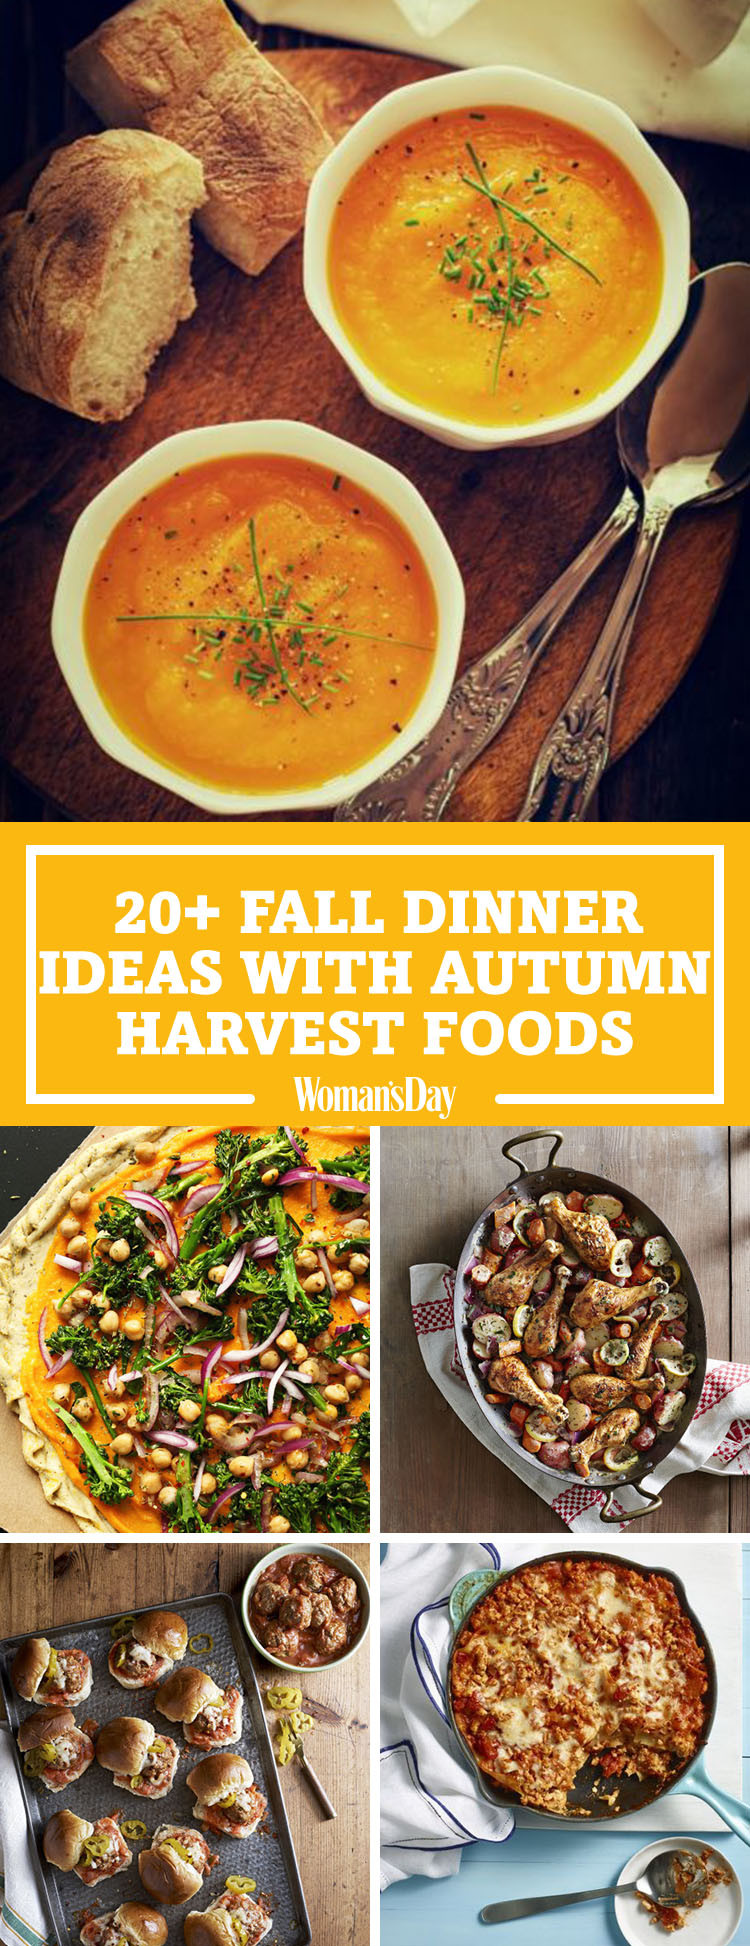 Easy Fall Dinner Recipe  26 Easy Fall Dinner Ideas Best Dinner Recipes for Autumn